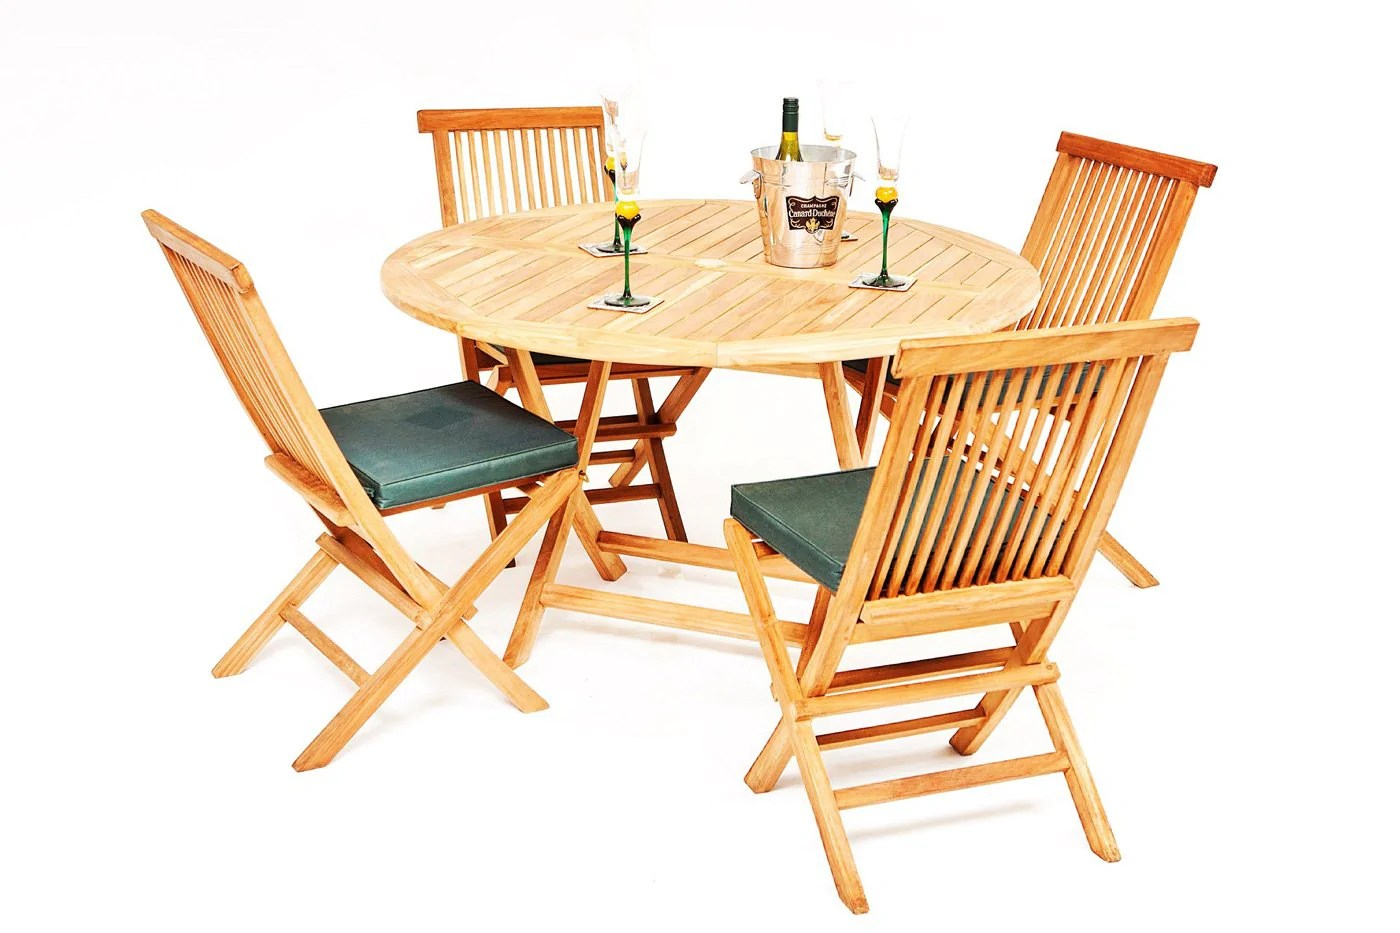 Outdoor Table And Chair Set The Pocklington 4 Seater Teak Garden Table Chairs Set